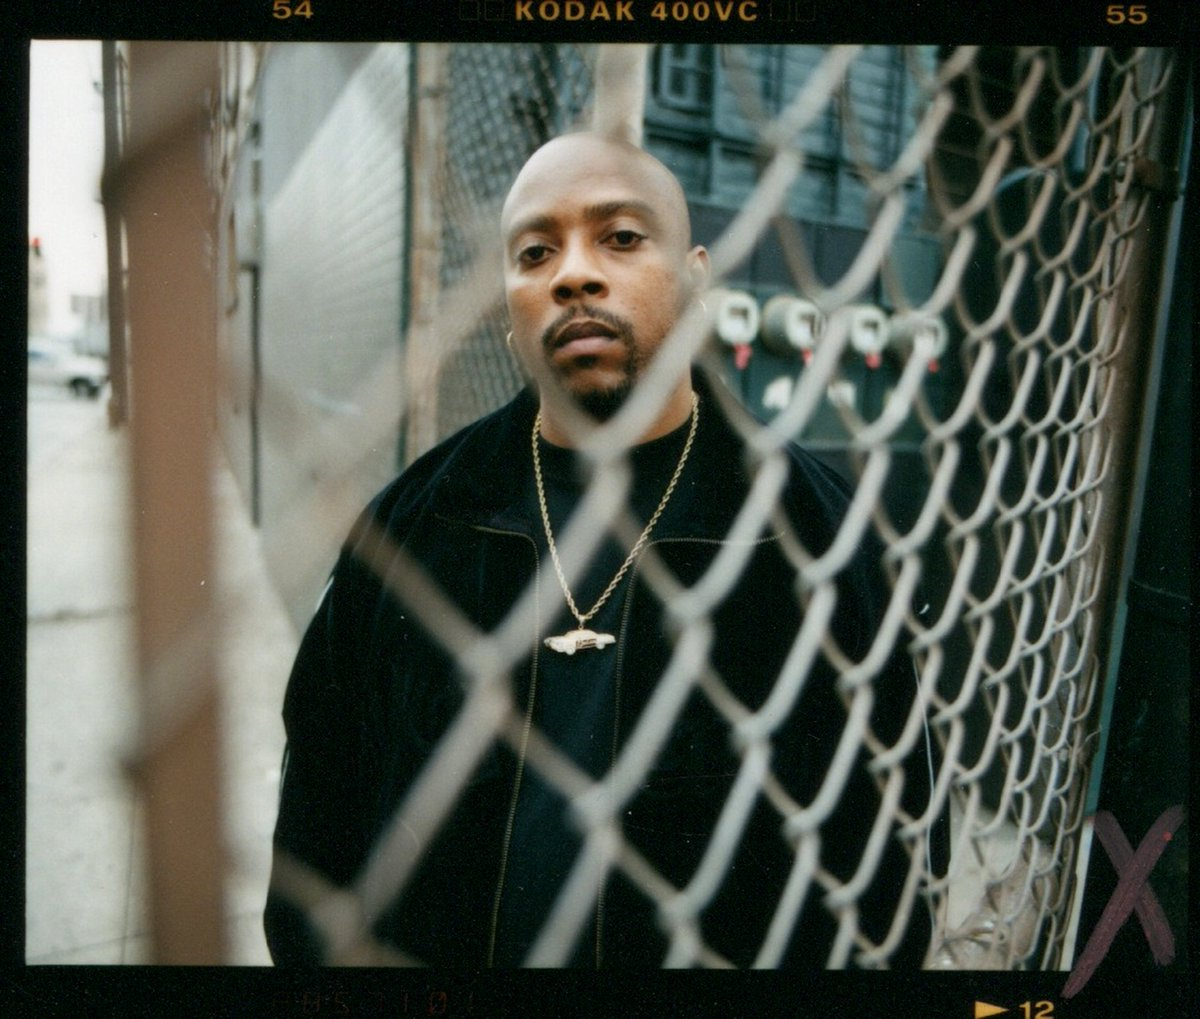 Nate Dogg would've turned 50 years old today.  Rest in power to a legend ✊🏾